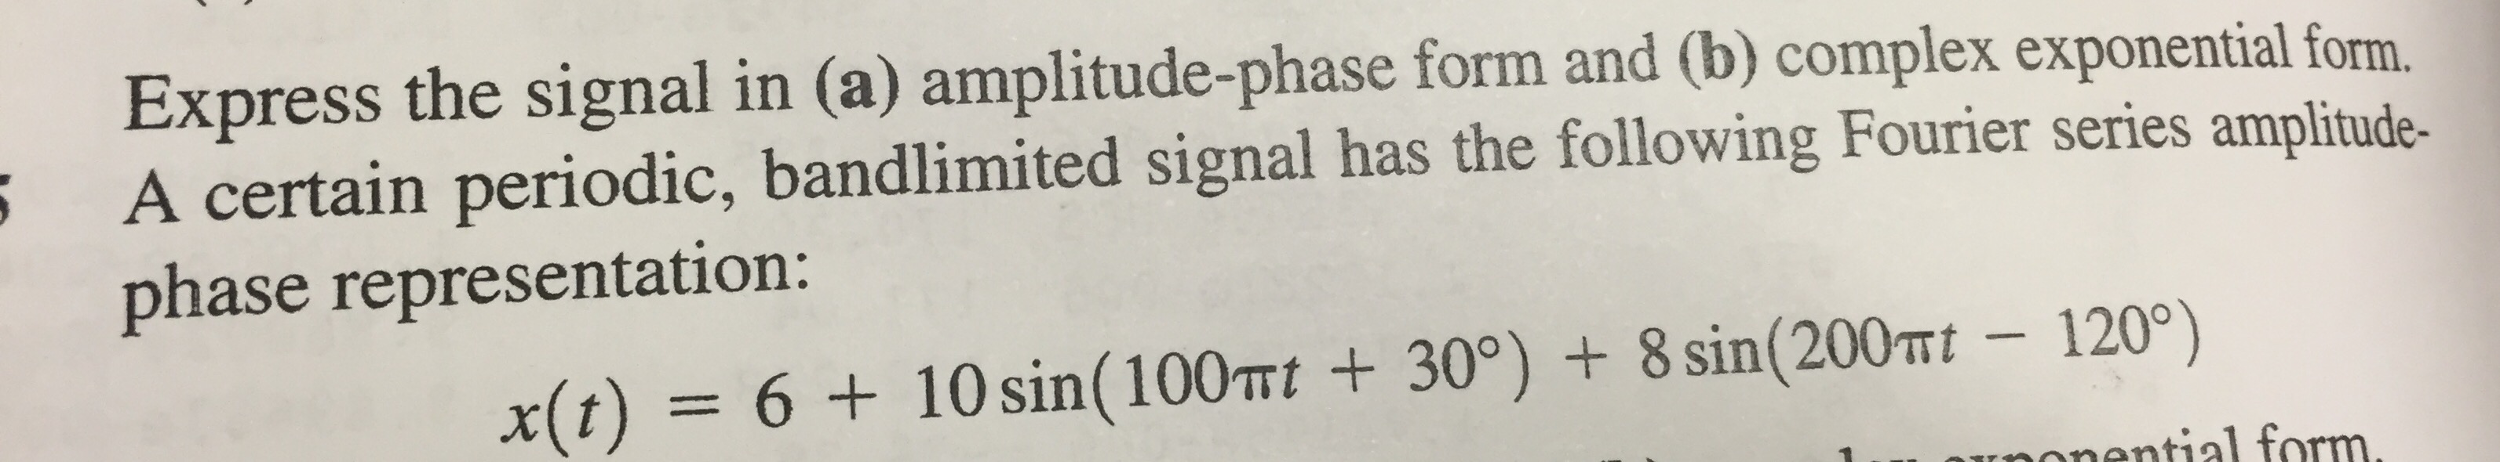 Express The Signal In (a) Amplitude-phase Form And... | Chegg.com